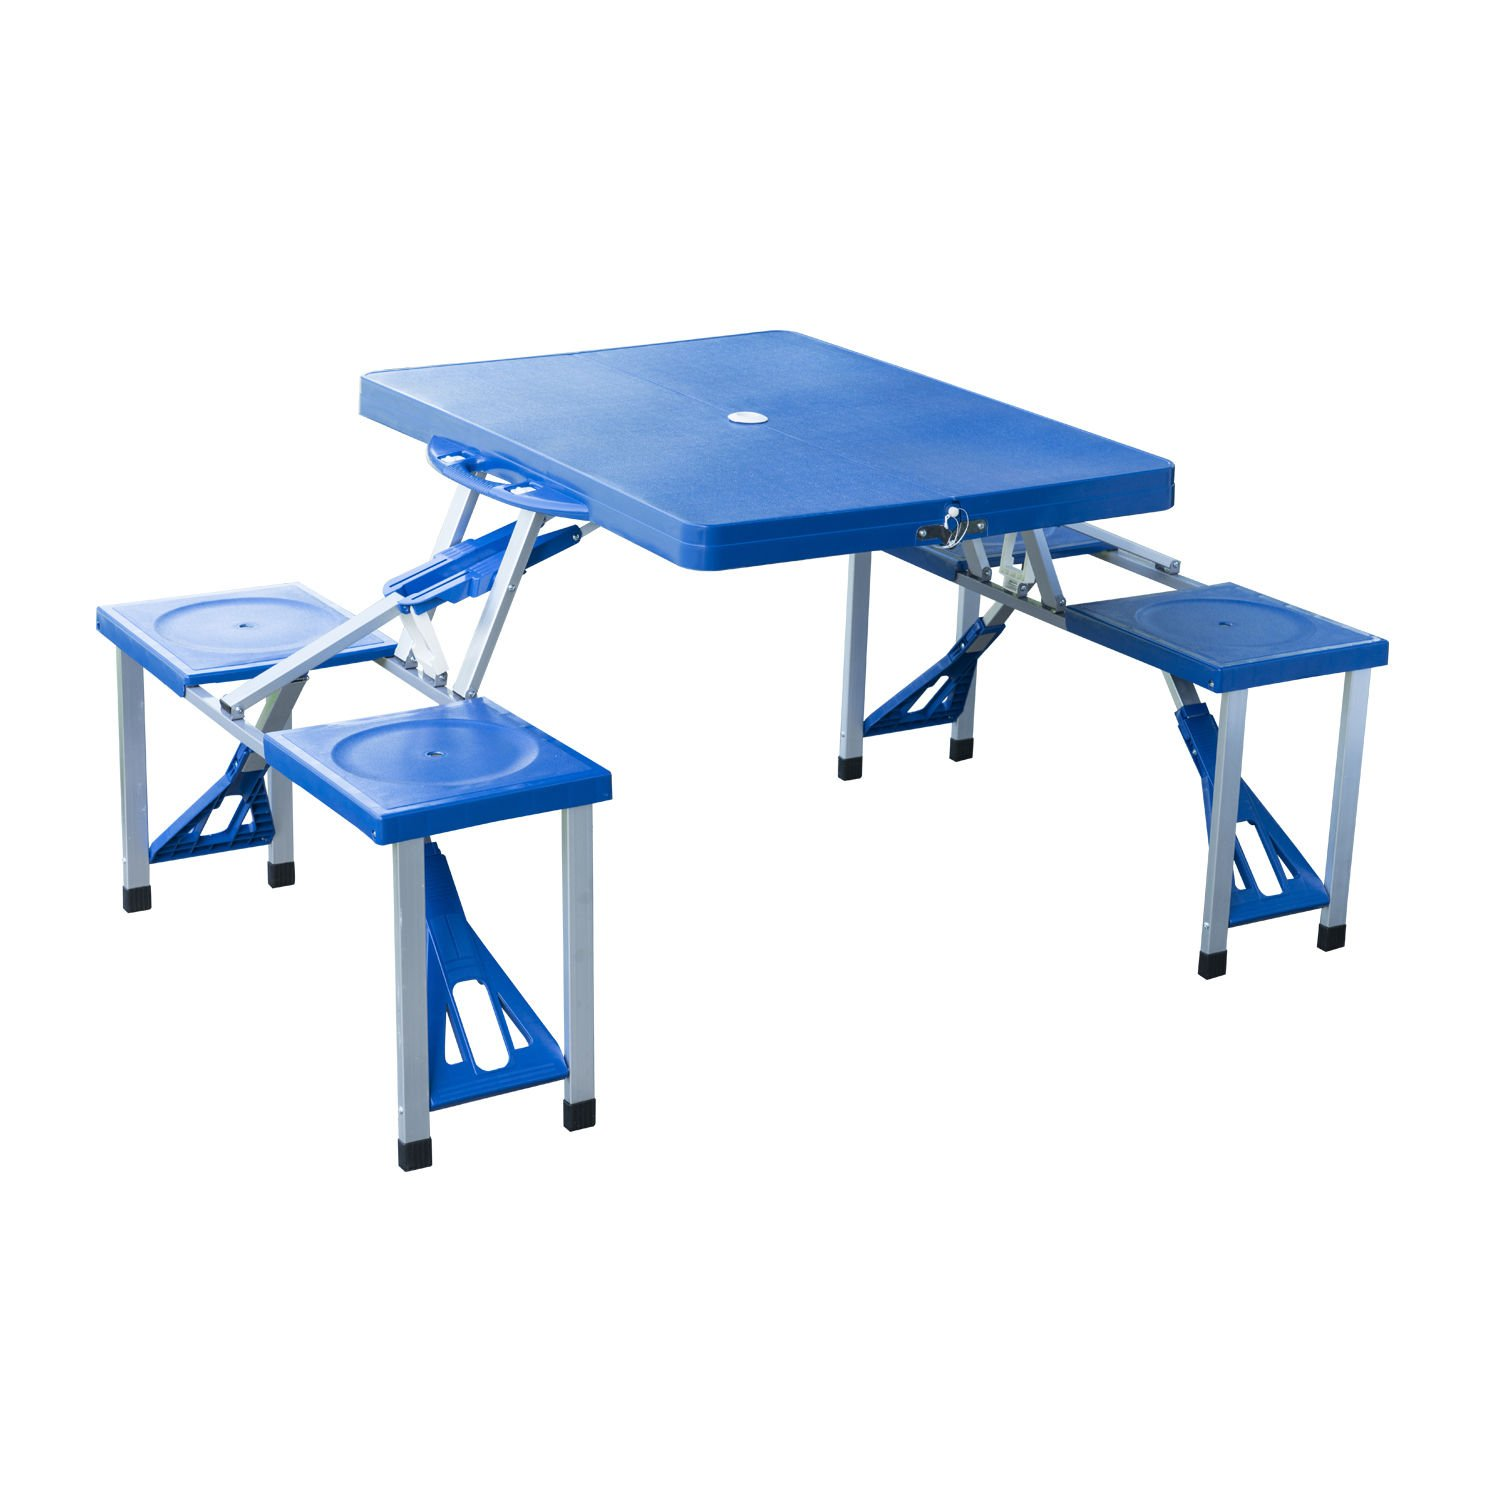 Outsunny Portable Lightweight Folding Suitcase Picnic Table w/4 Built-In Chairs, Blue by Outsunny